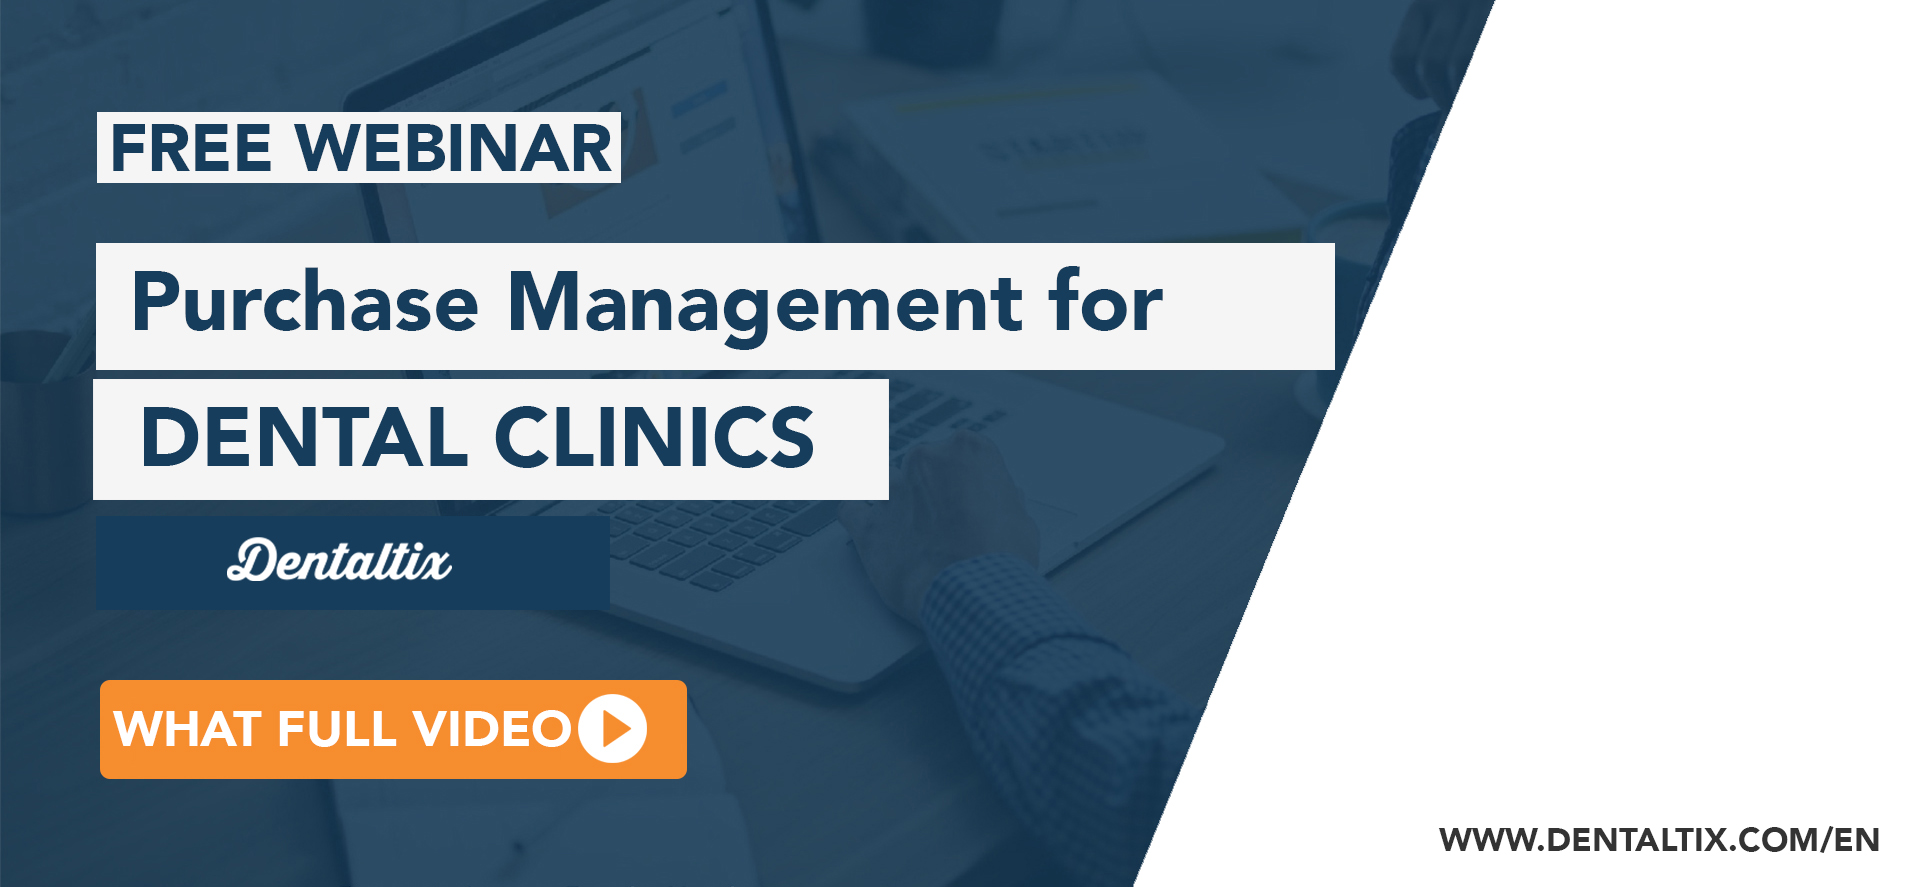 Free webinar: Purchasing management for dental clinics